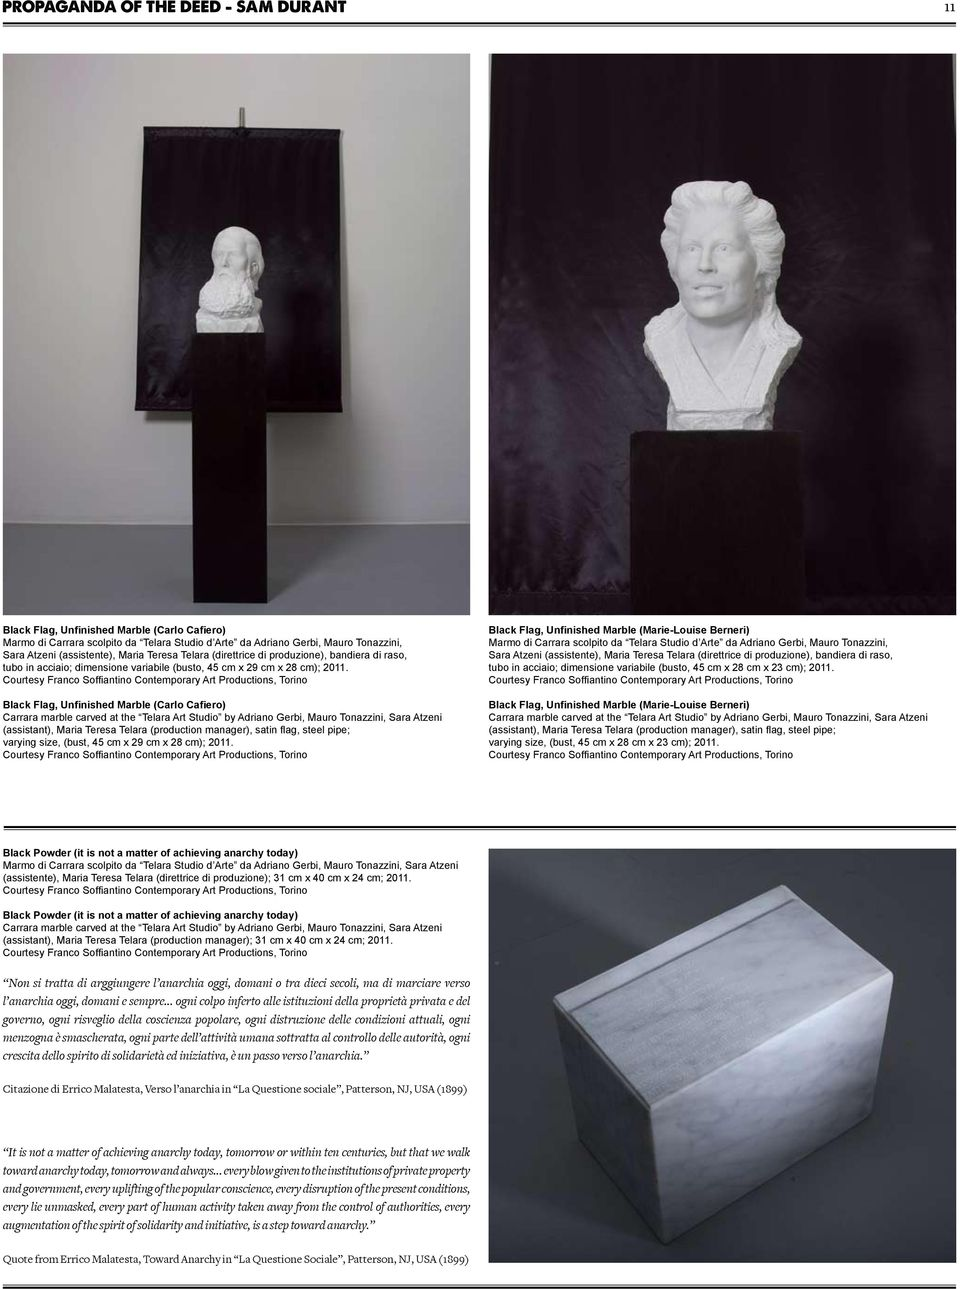 Black Flag, Unfinished Marble (Carlo Cafiero) (assistant), Maria Teresa Telara (production manager), satin flag, steel pipe; varying size, (bust, 45 cm x 29 cm x 28 cm); 2011.